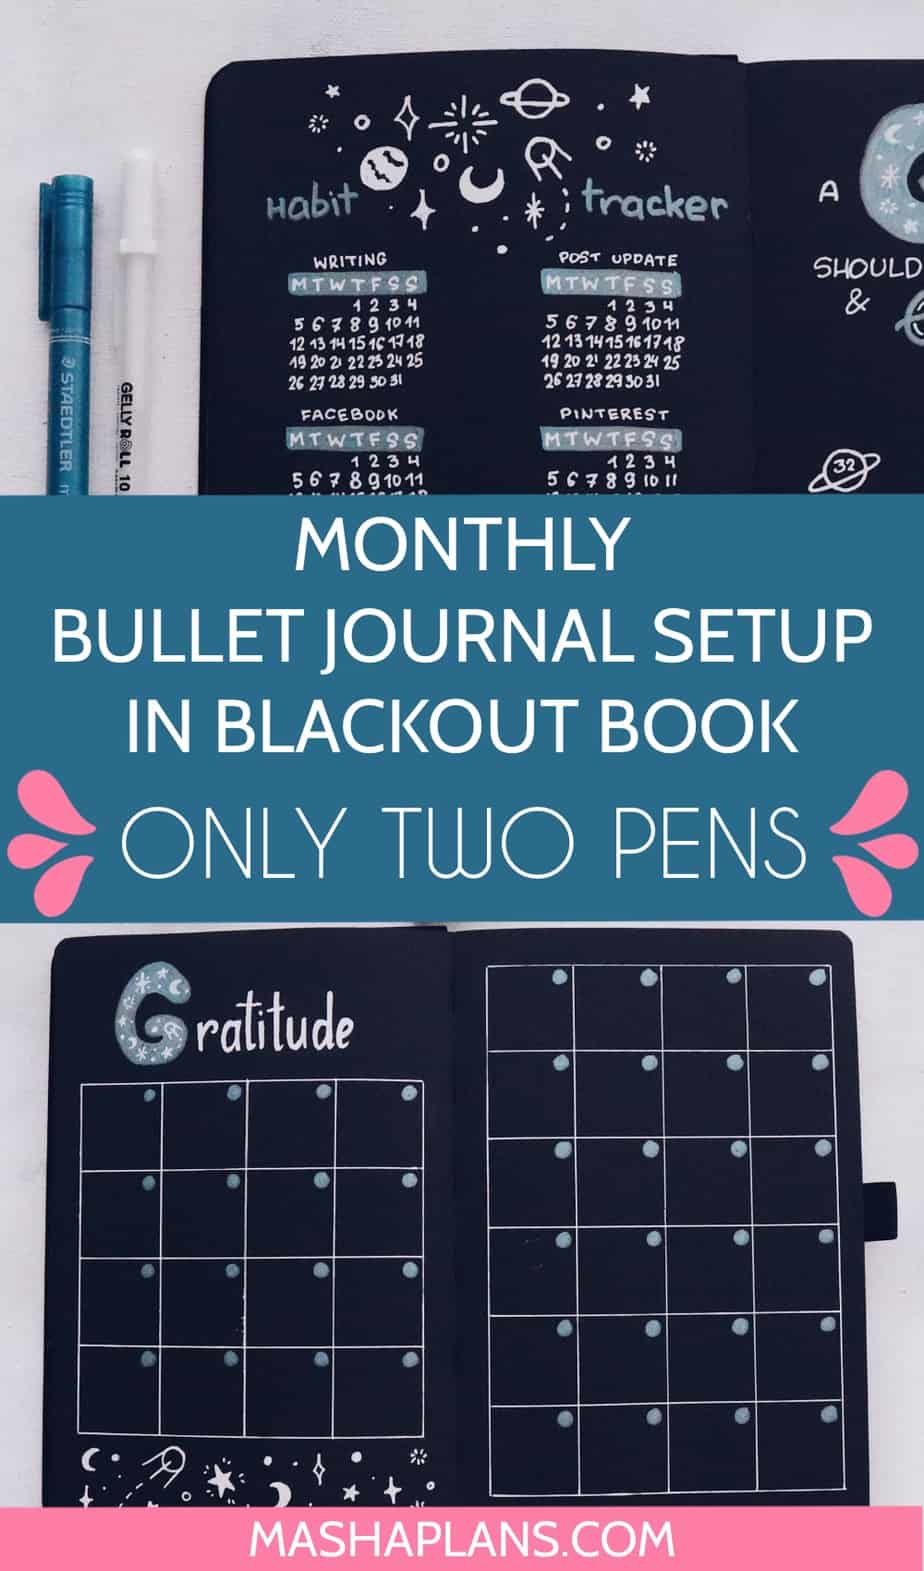 Blackout Book and JUST TWO Pens | August Plan With Me | Masha Plans